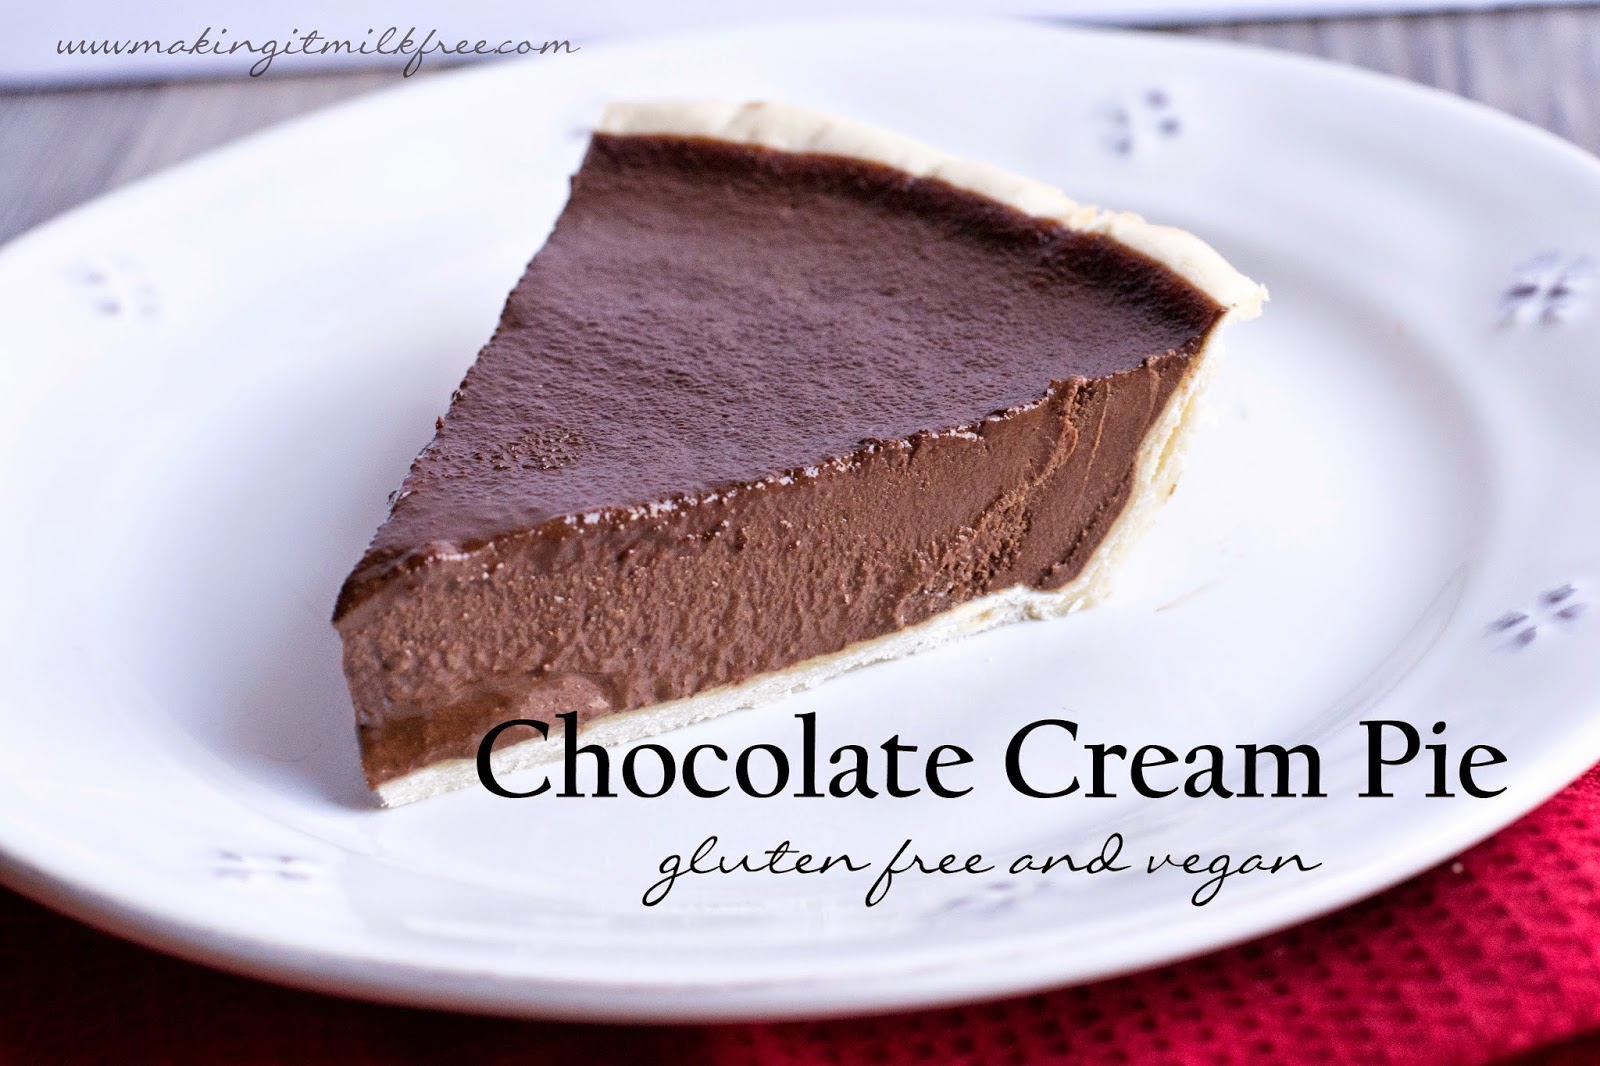 #glutenfree #vegan #chocolatepie